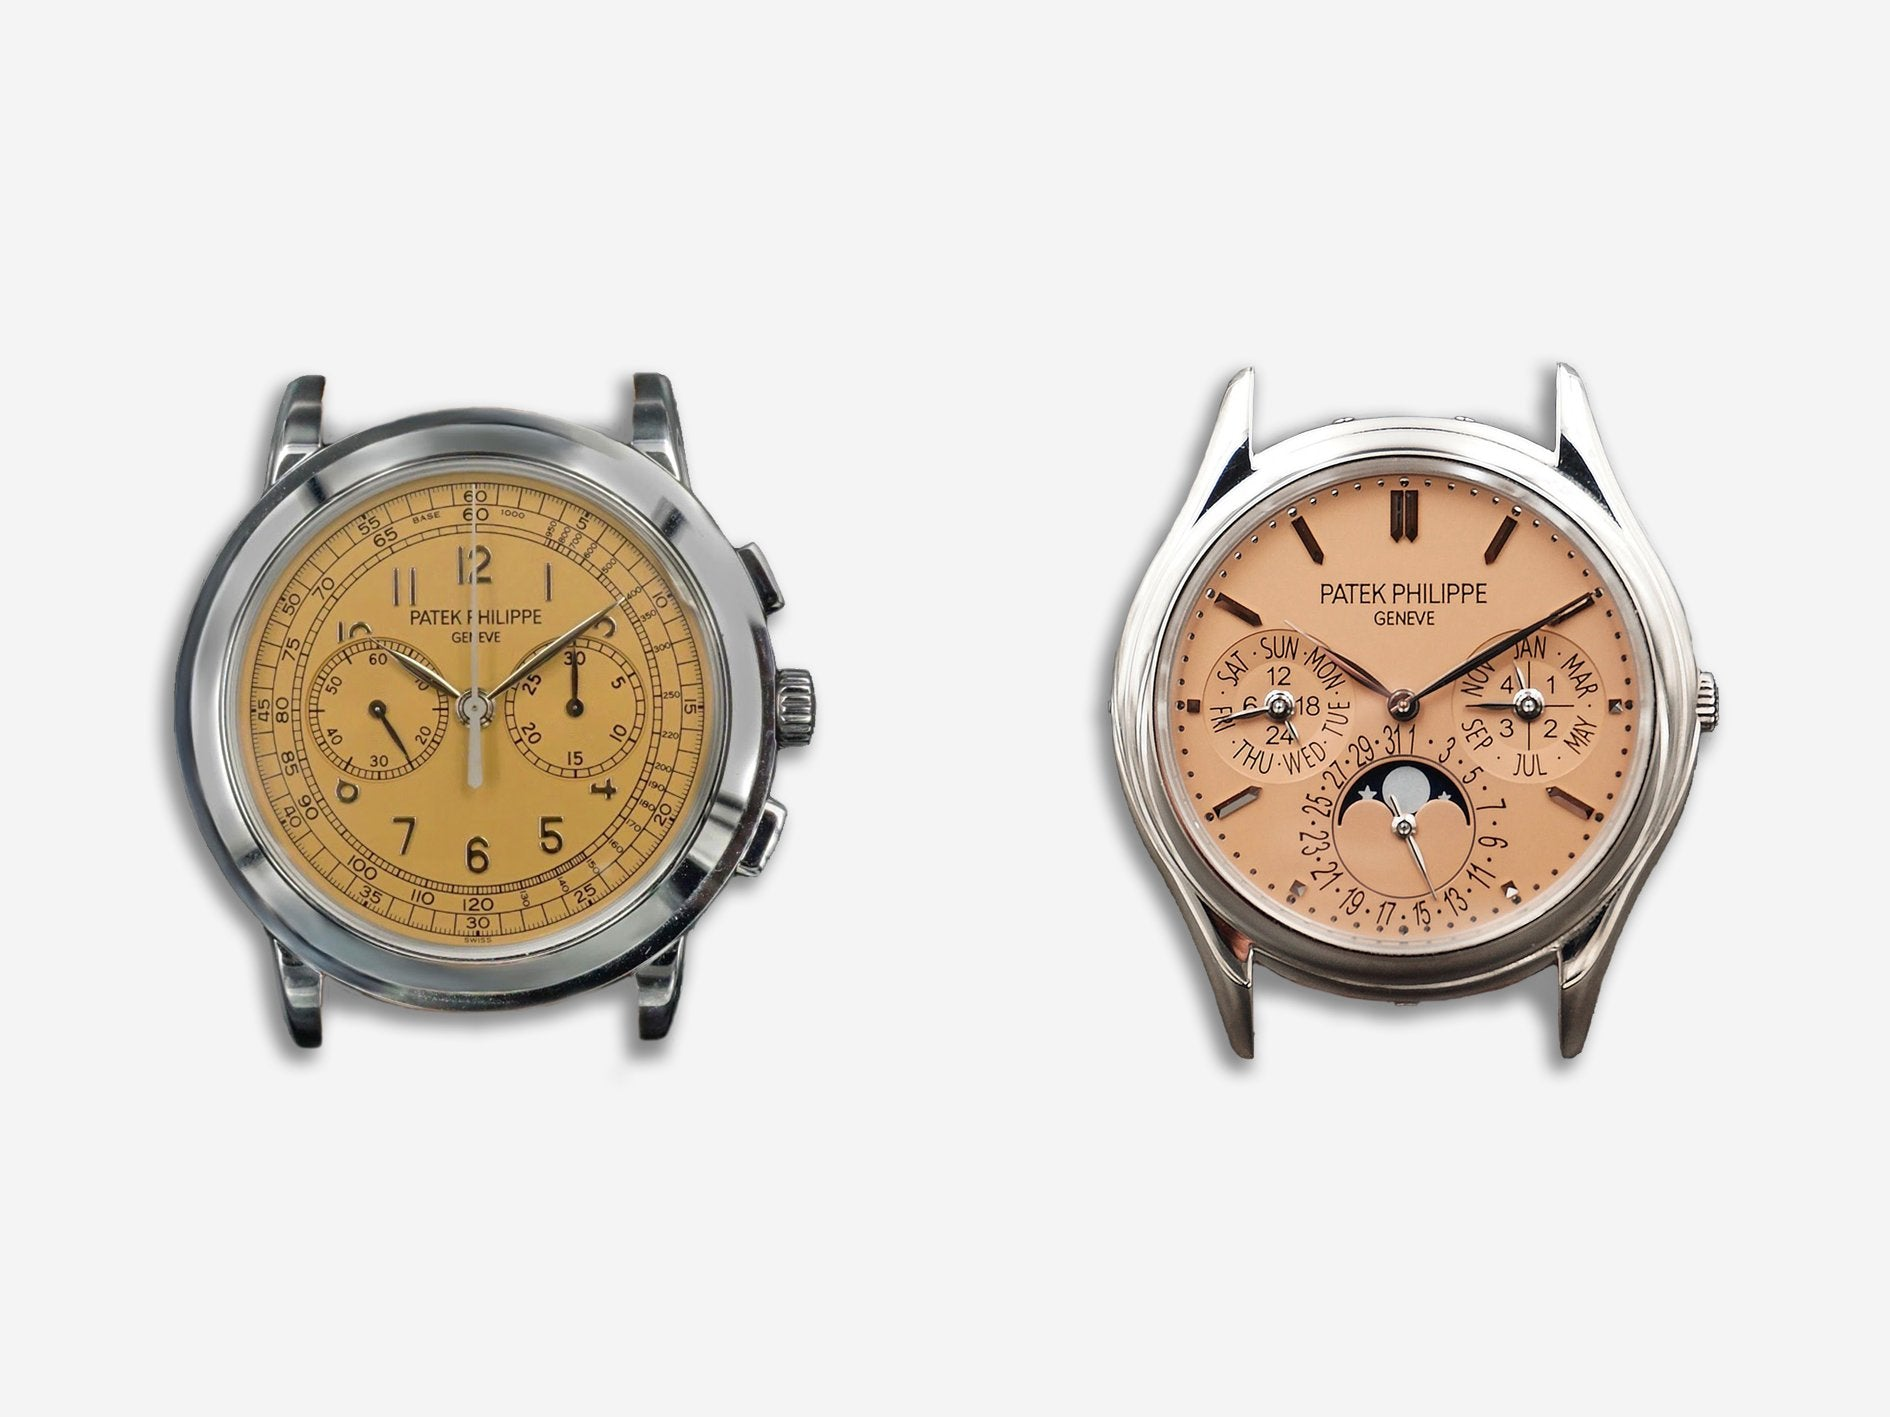 Patek Philippe 3940 perpetual calendar and 5070 chronograph with a special edition salmon dial from the Saatich Grand Exhibition for A Collected Man London